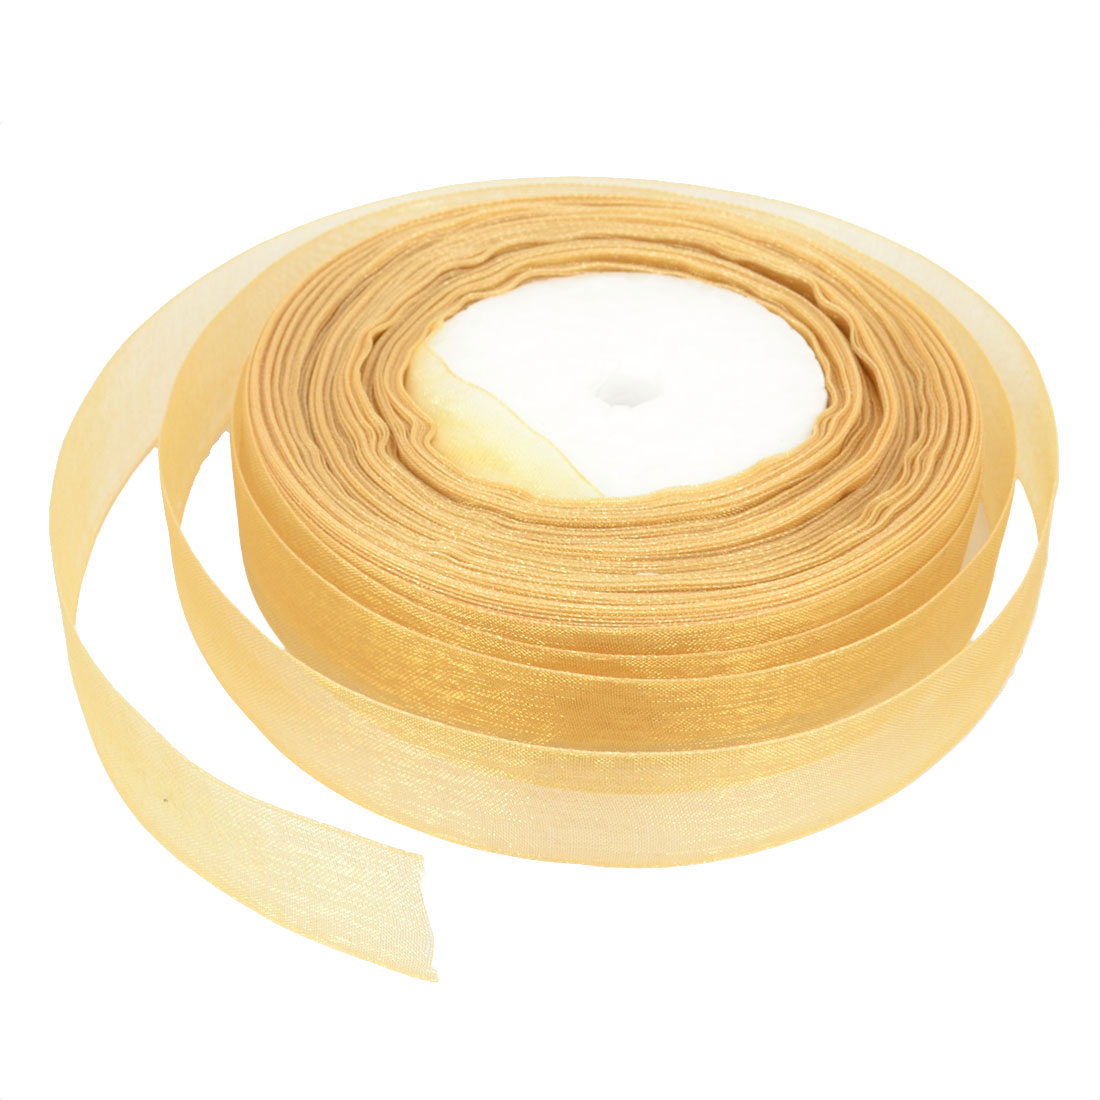 Gift Wrapping DIY Craft Wedding Detail Pure Pattern Sheer Organza Ribbon Roll Tape Khaki 20mmx50 Yard